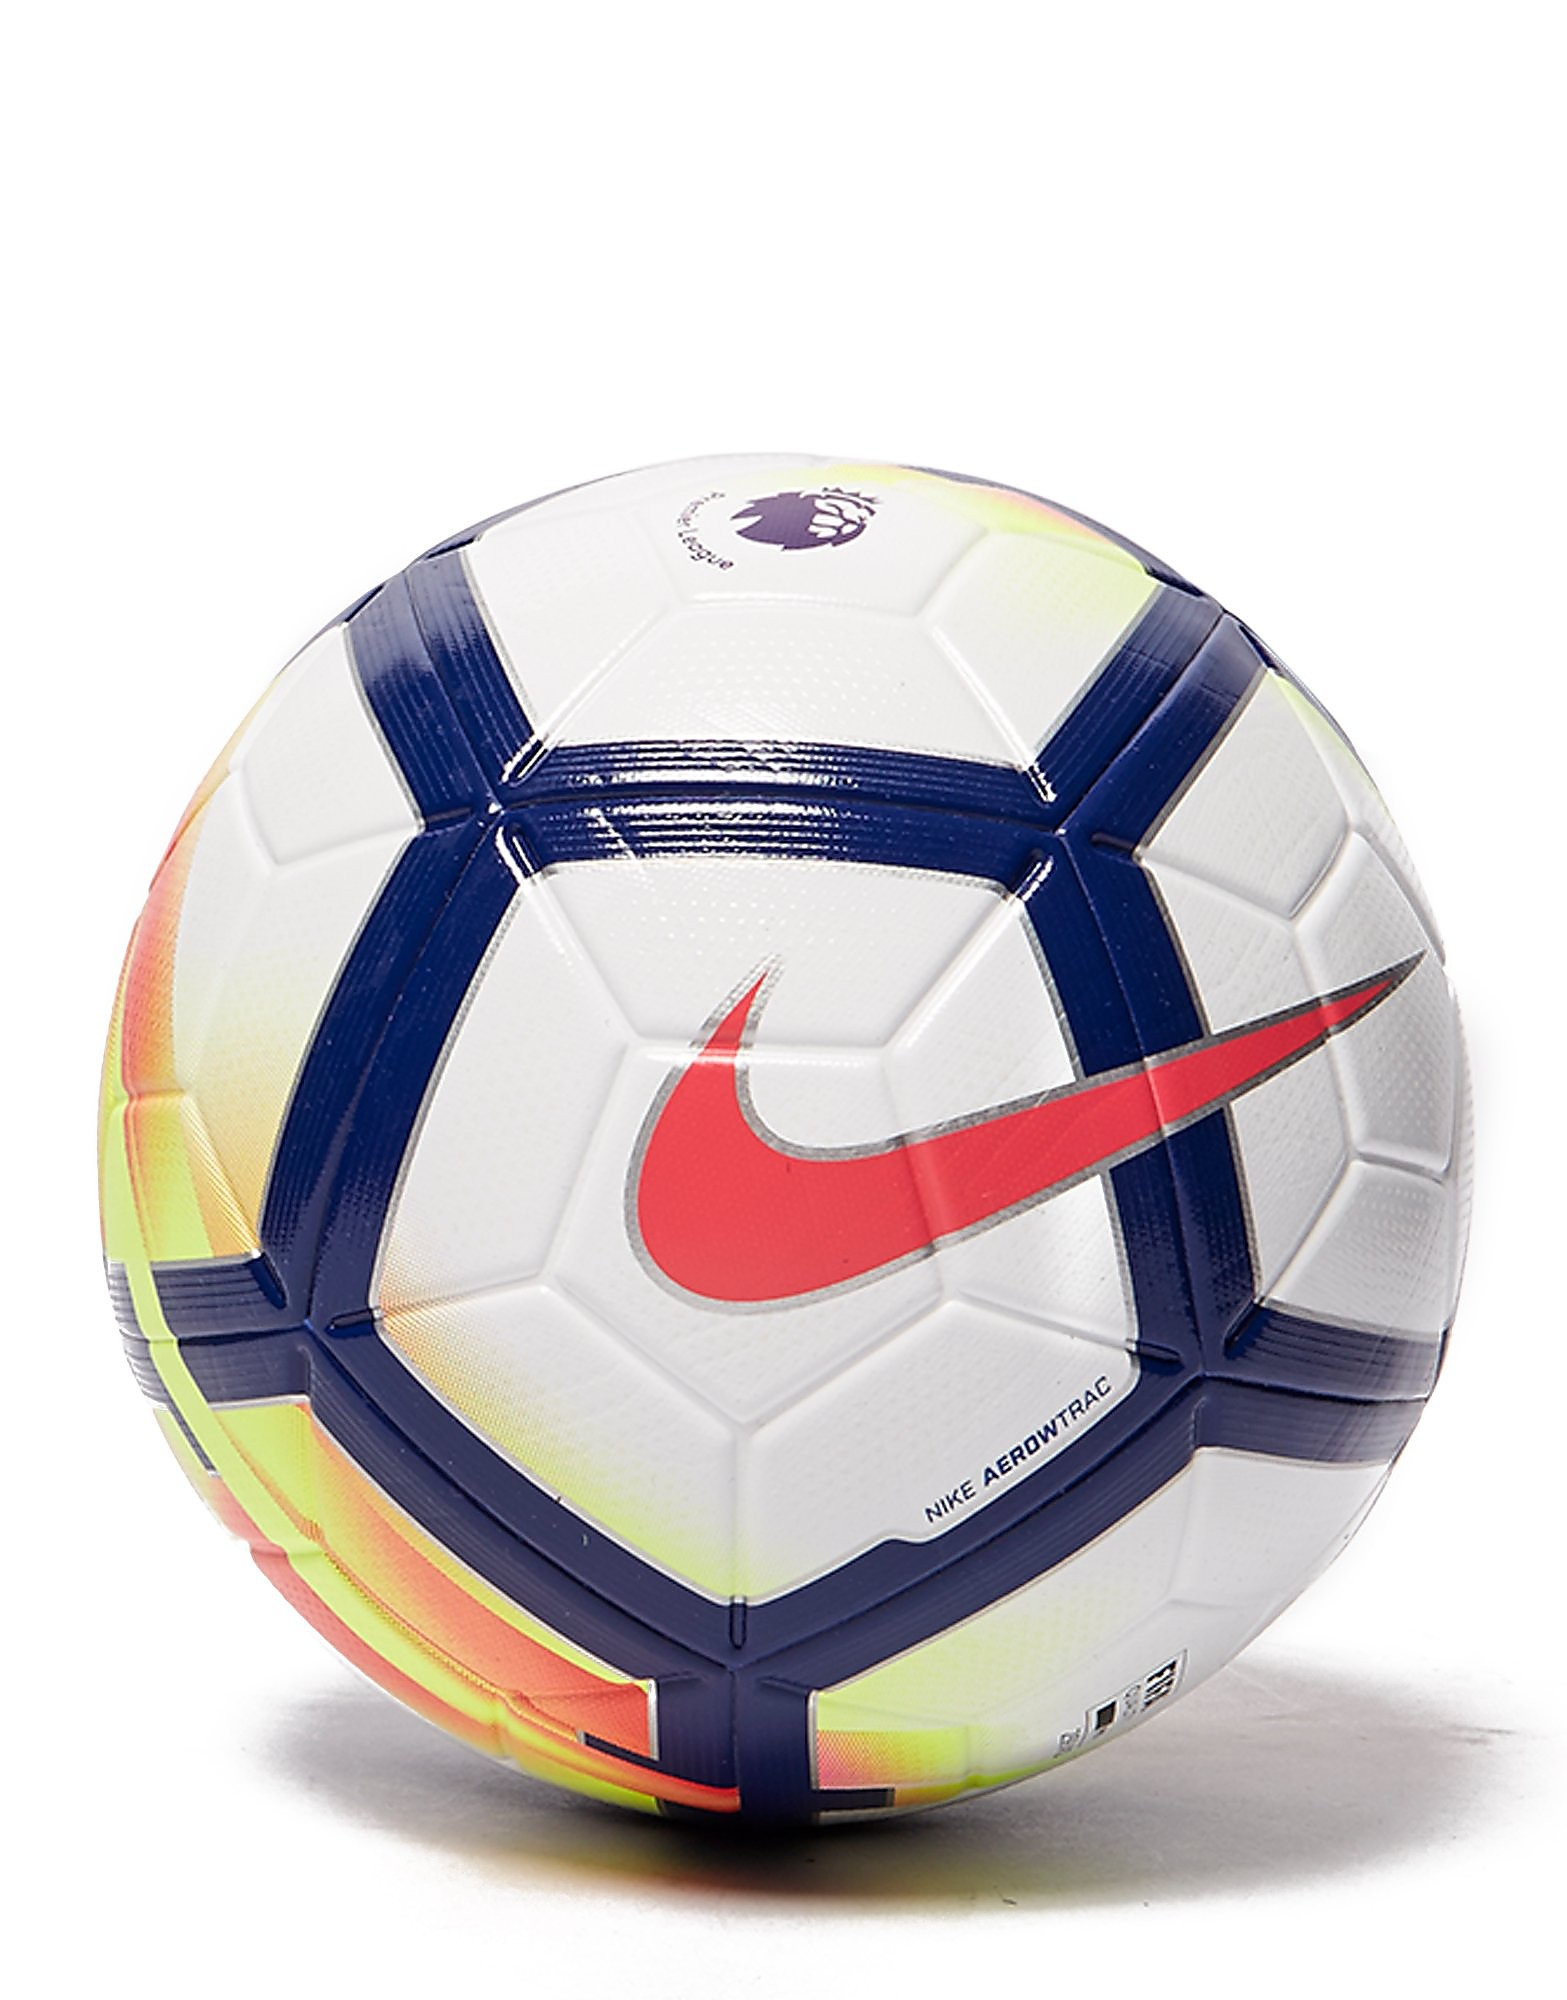 Nike Ordem V English Premier League Football